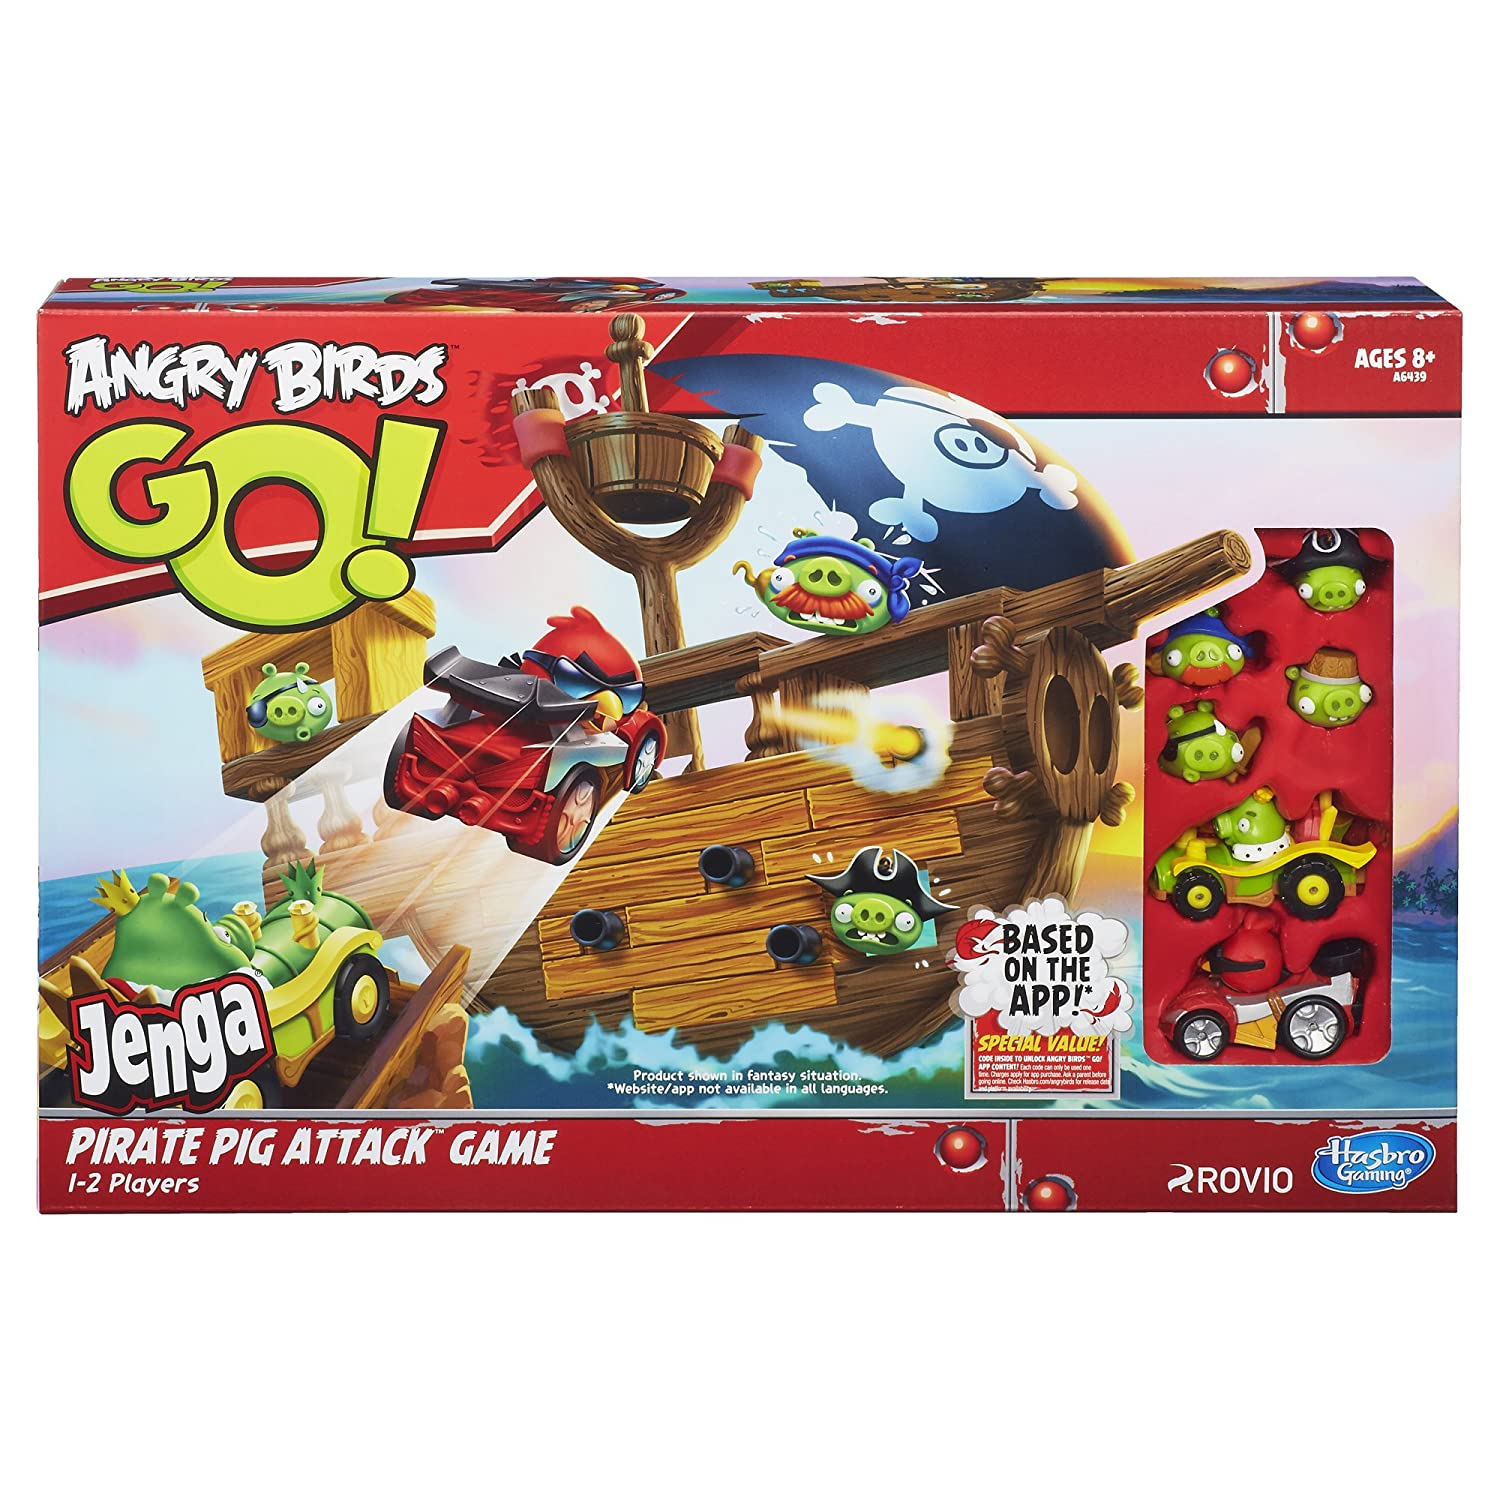 Amazoncom Angry Birds Go Jenga Pirate Pig Attack Game Toys Games